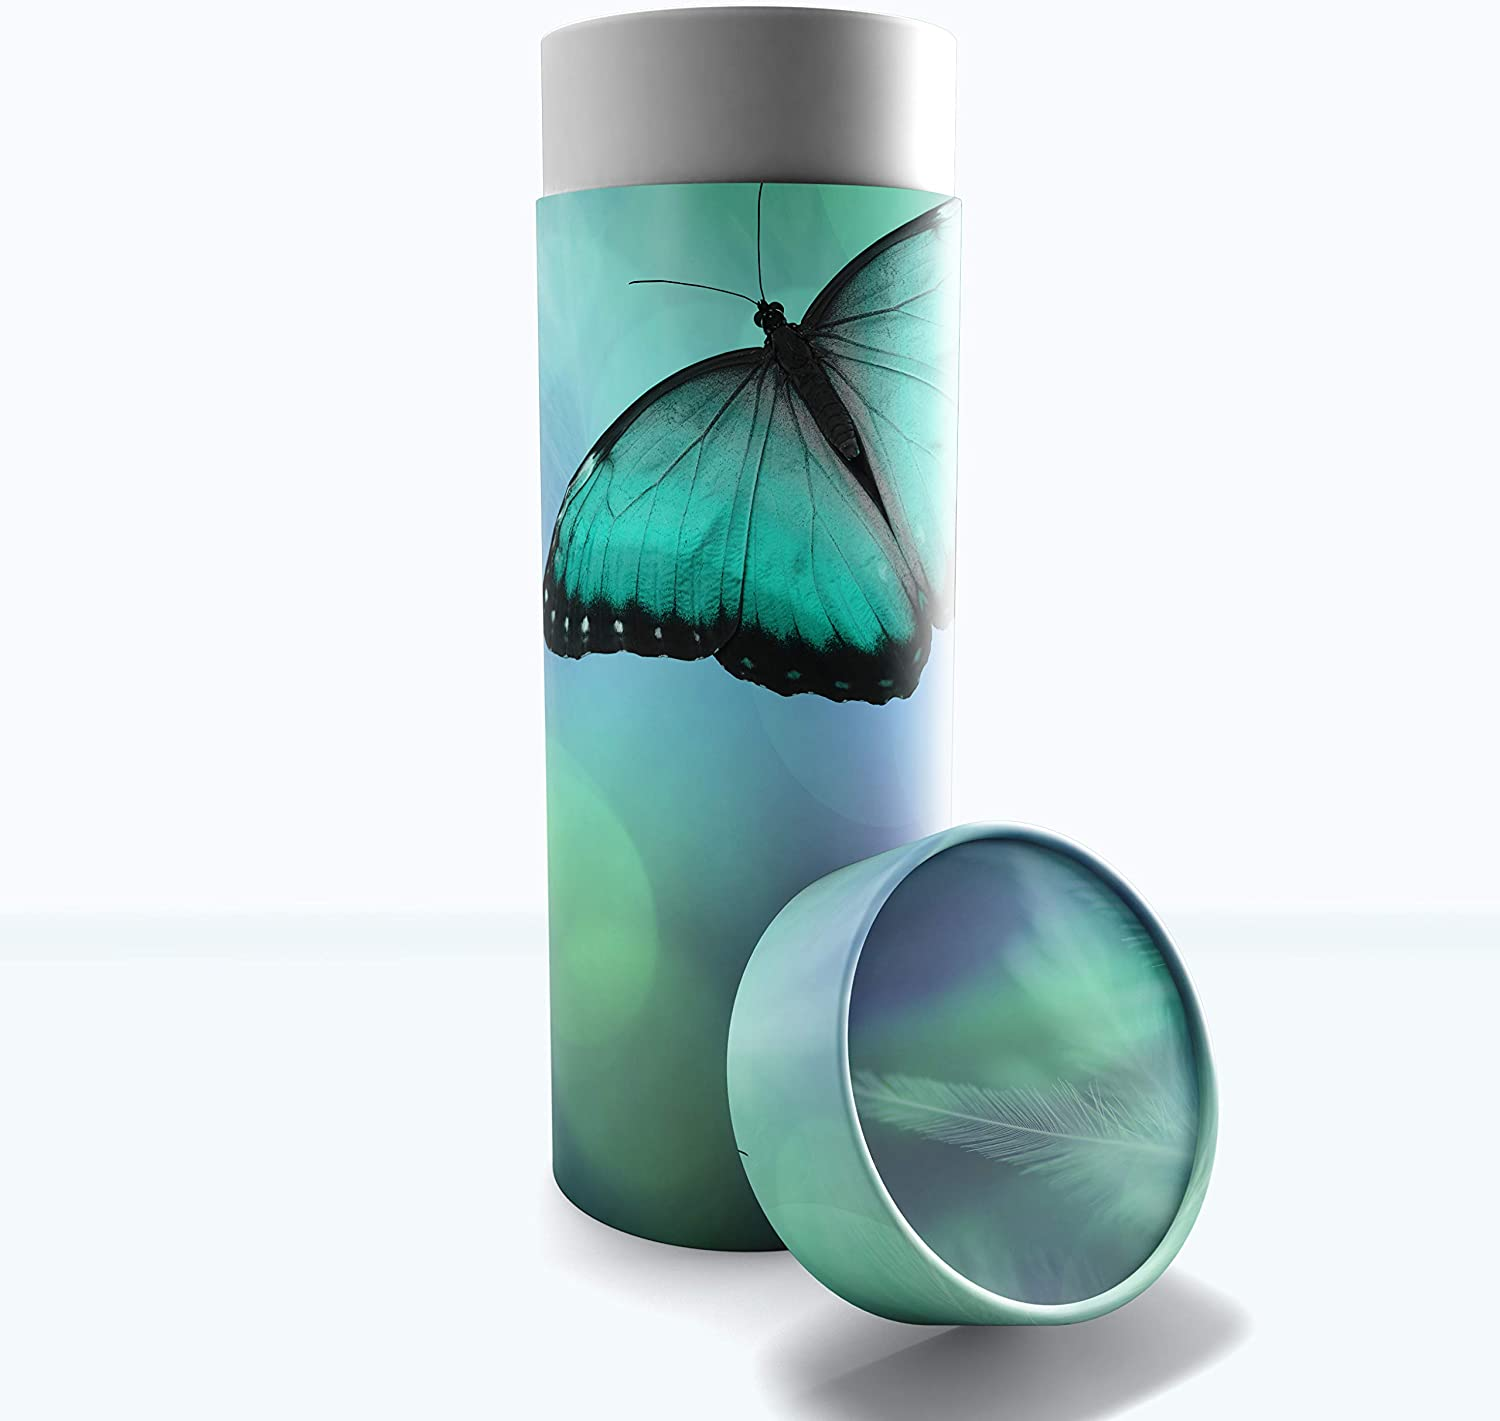 Female Cremation Urns Biodegradable & Eco Friendly Cremation Urns for Adult Ashes, Burial Urns, Scattering Tube for Ashes, Scattering Urns for Human Ashes (Bokeh Butterflies, Small 8